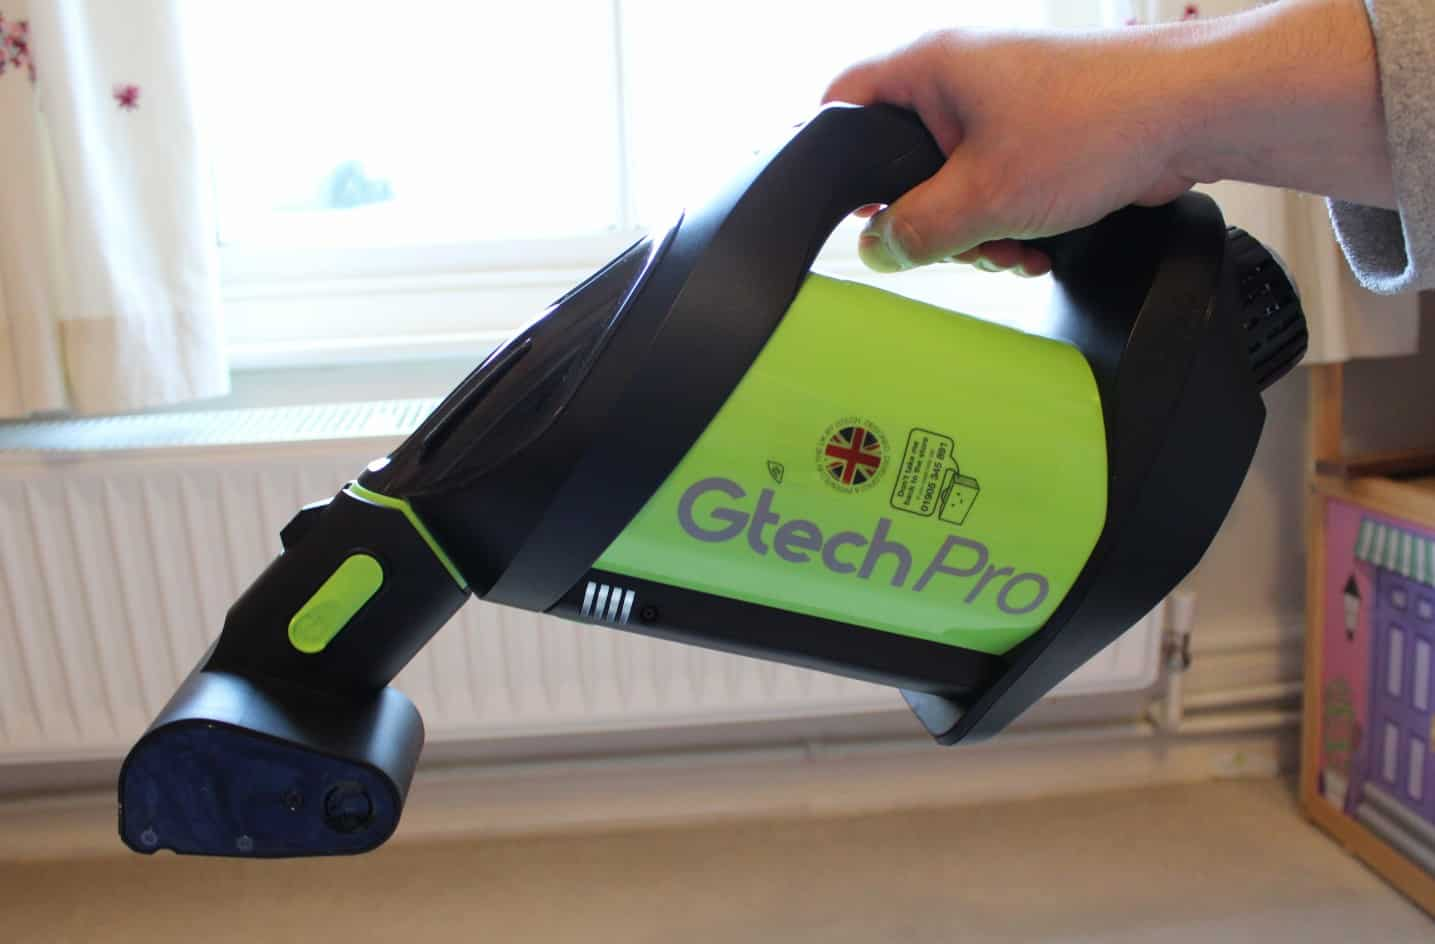 Gtech Pro Reviews – Cordless Bagged Vacuum Cleaner